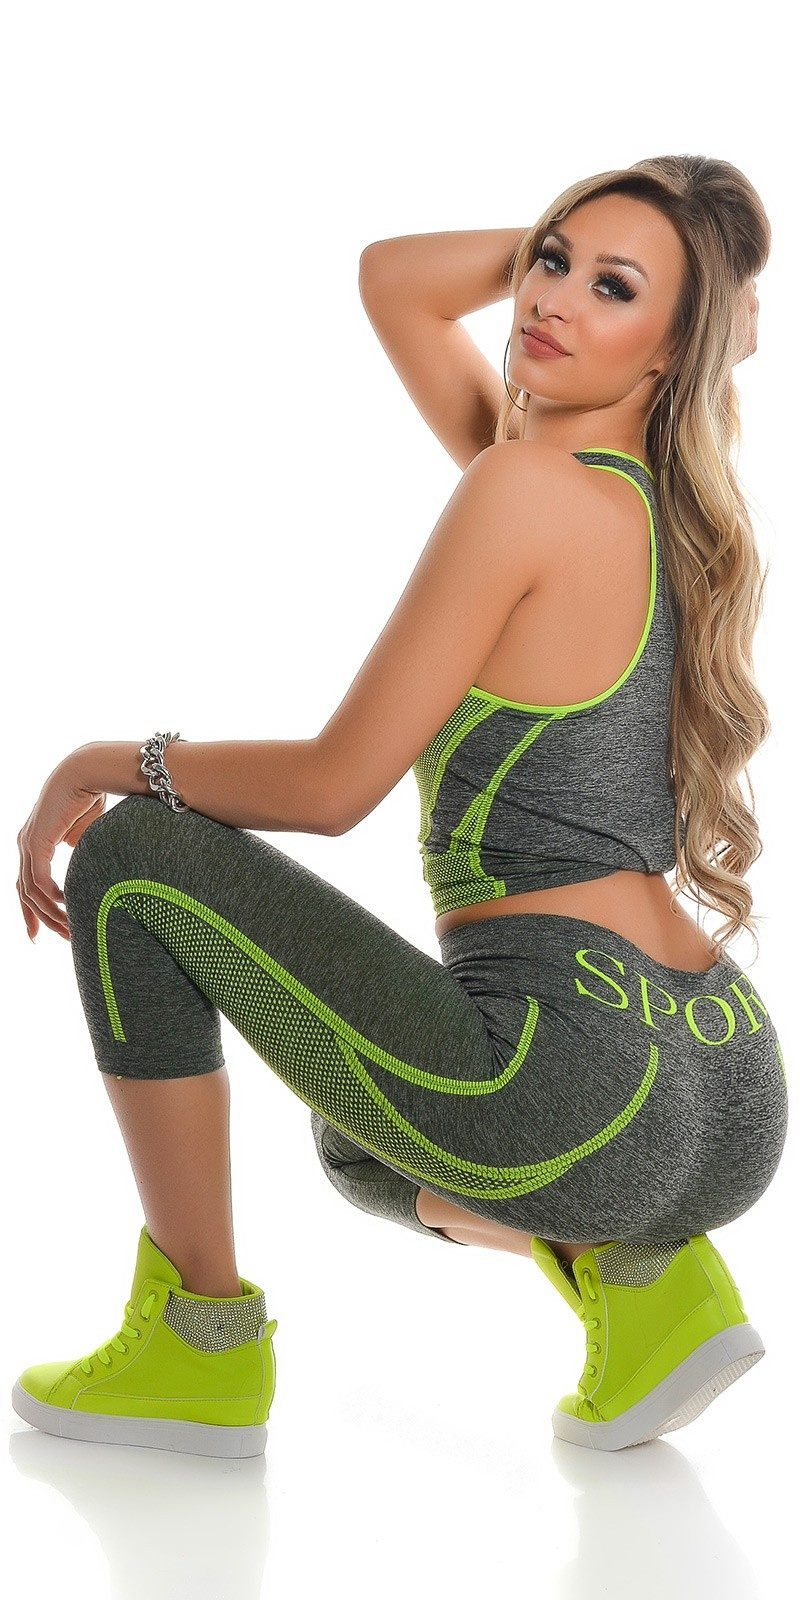 Trendy Workout Outfit Tanktop & Caprileggings Neonyellow